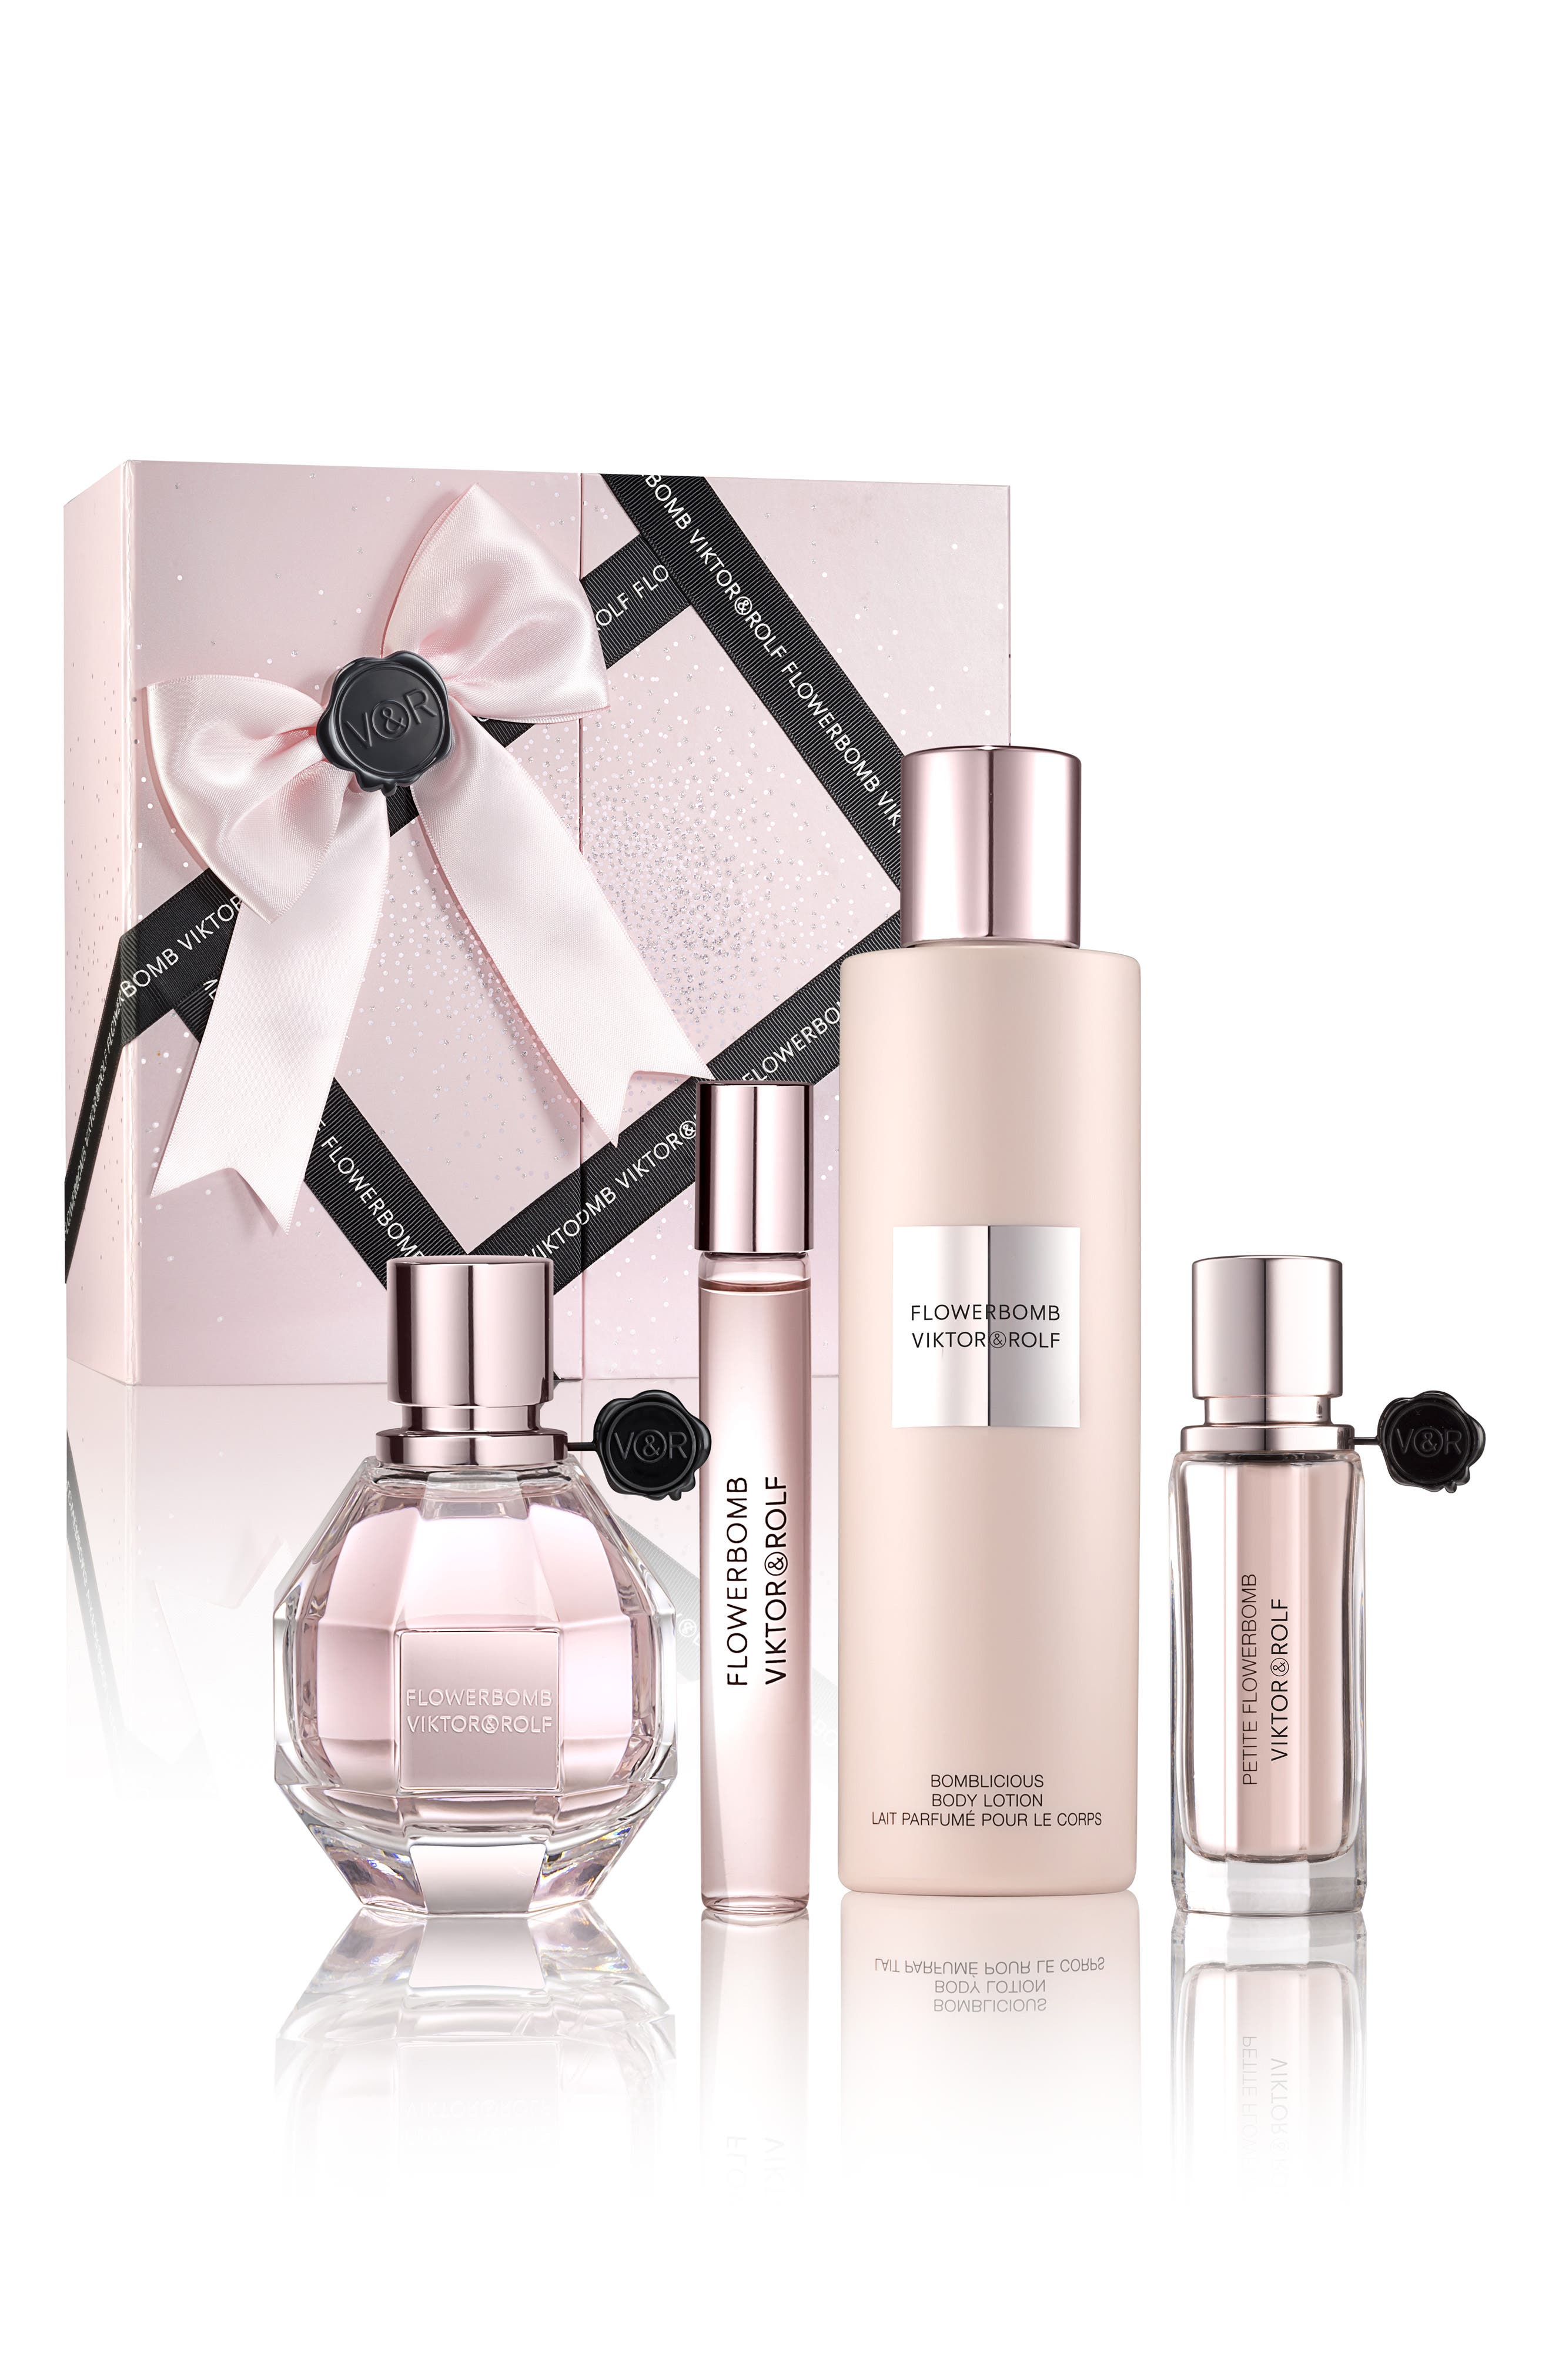 Flowerbomb Four-Piece Luxury Set,                             Alternate thumbnail 4, color,                             No Color